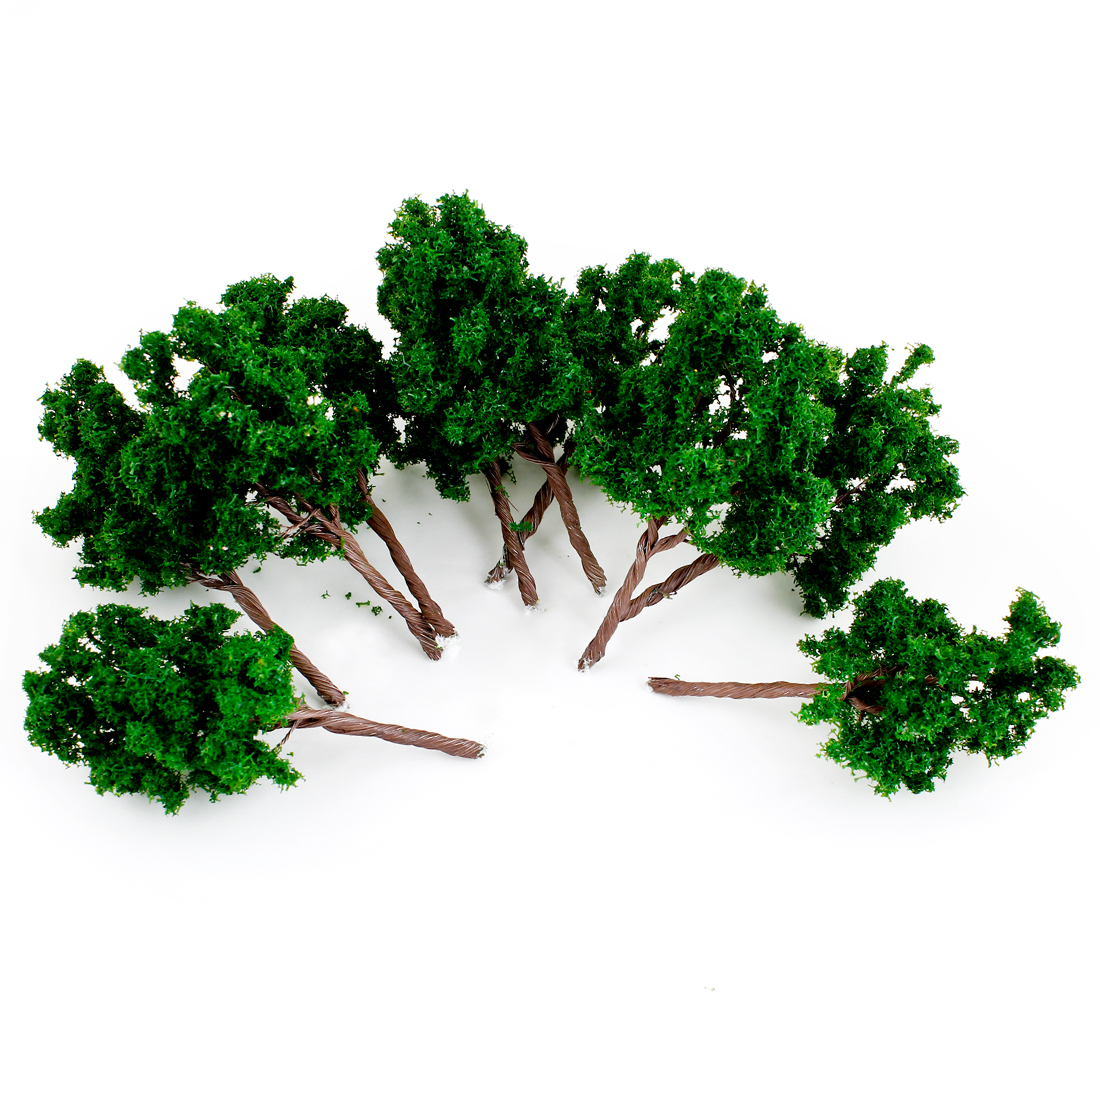 11cm High Scale 1:75-100 Art Green Scenery Model Tree 10 Pcs